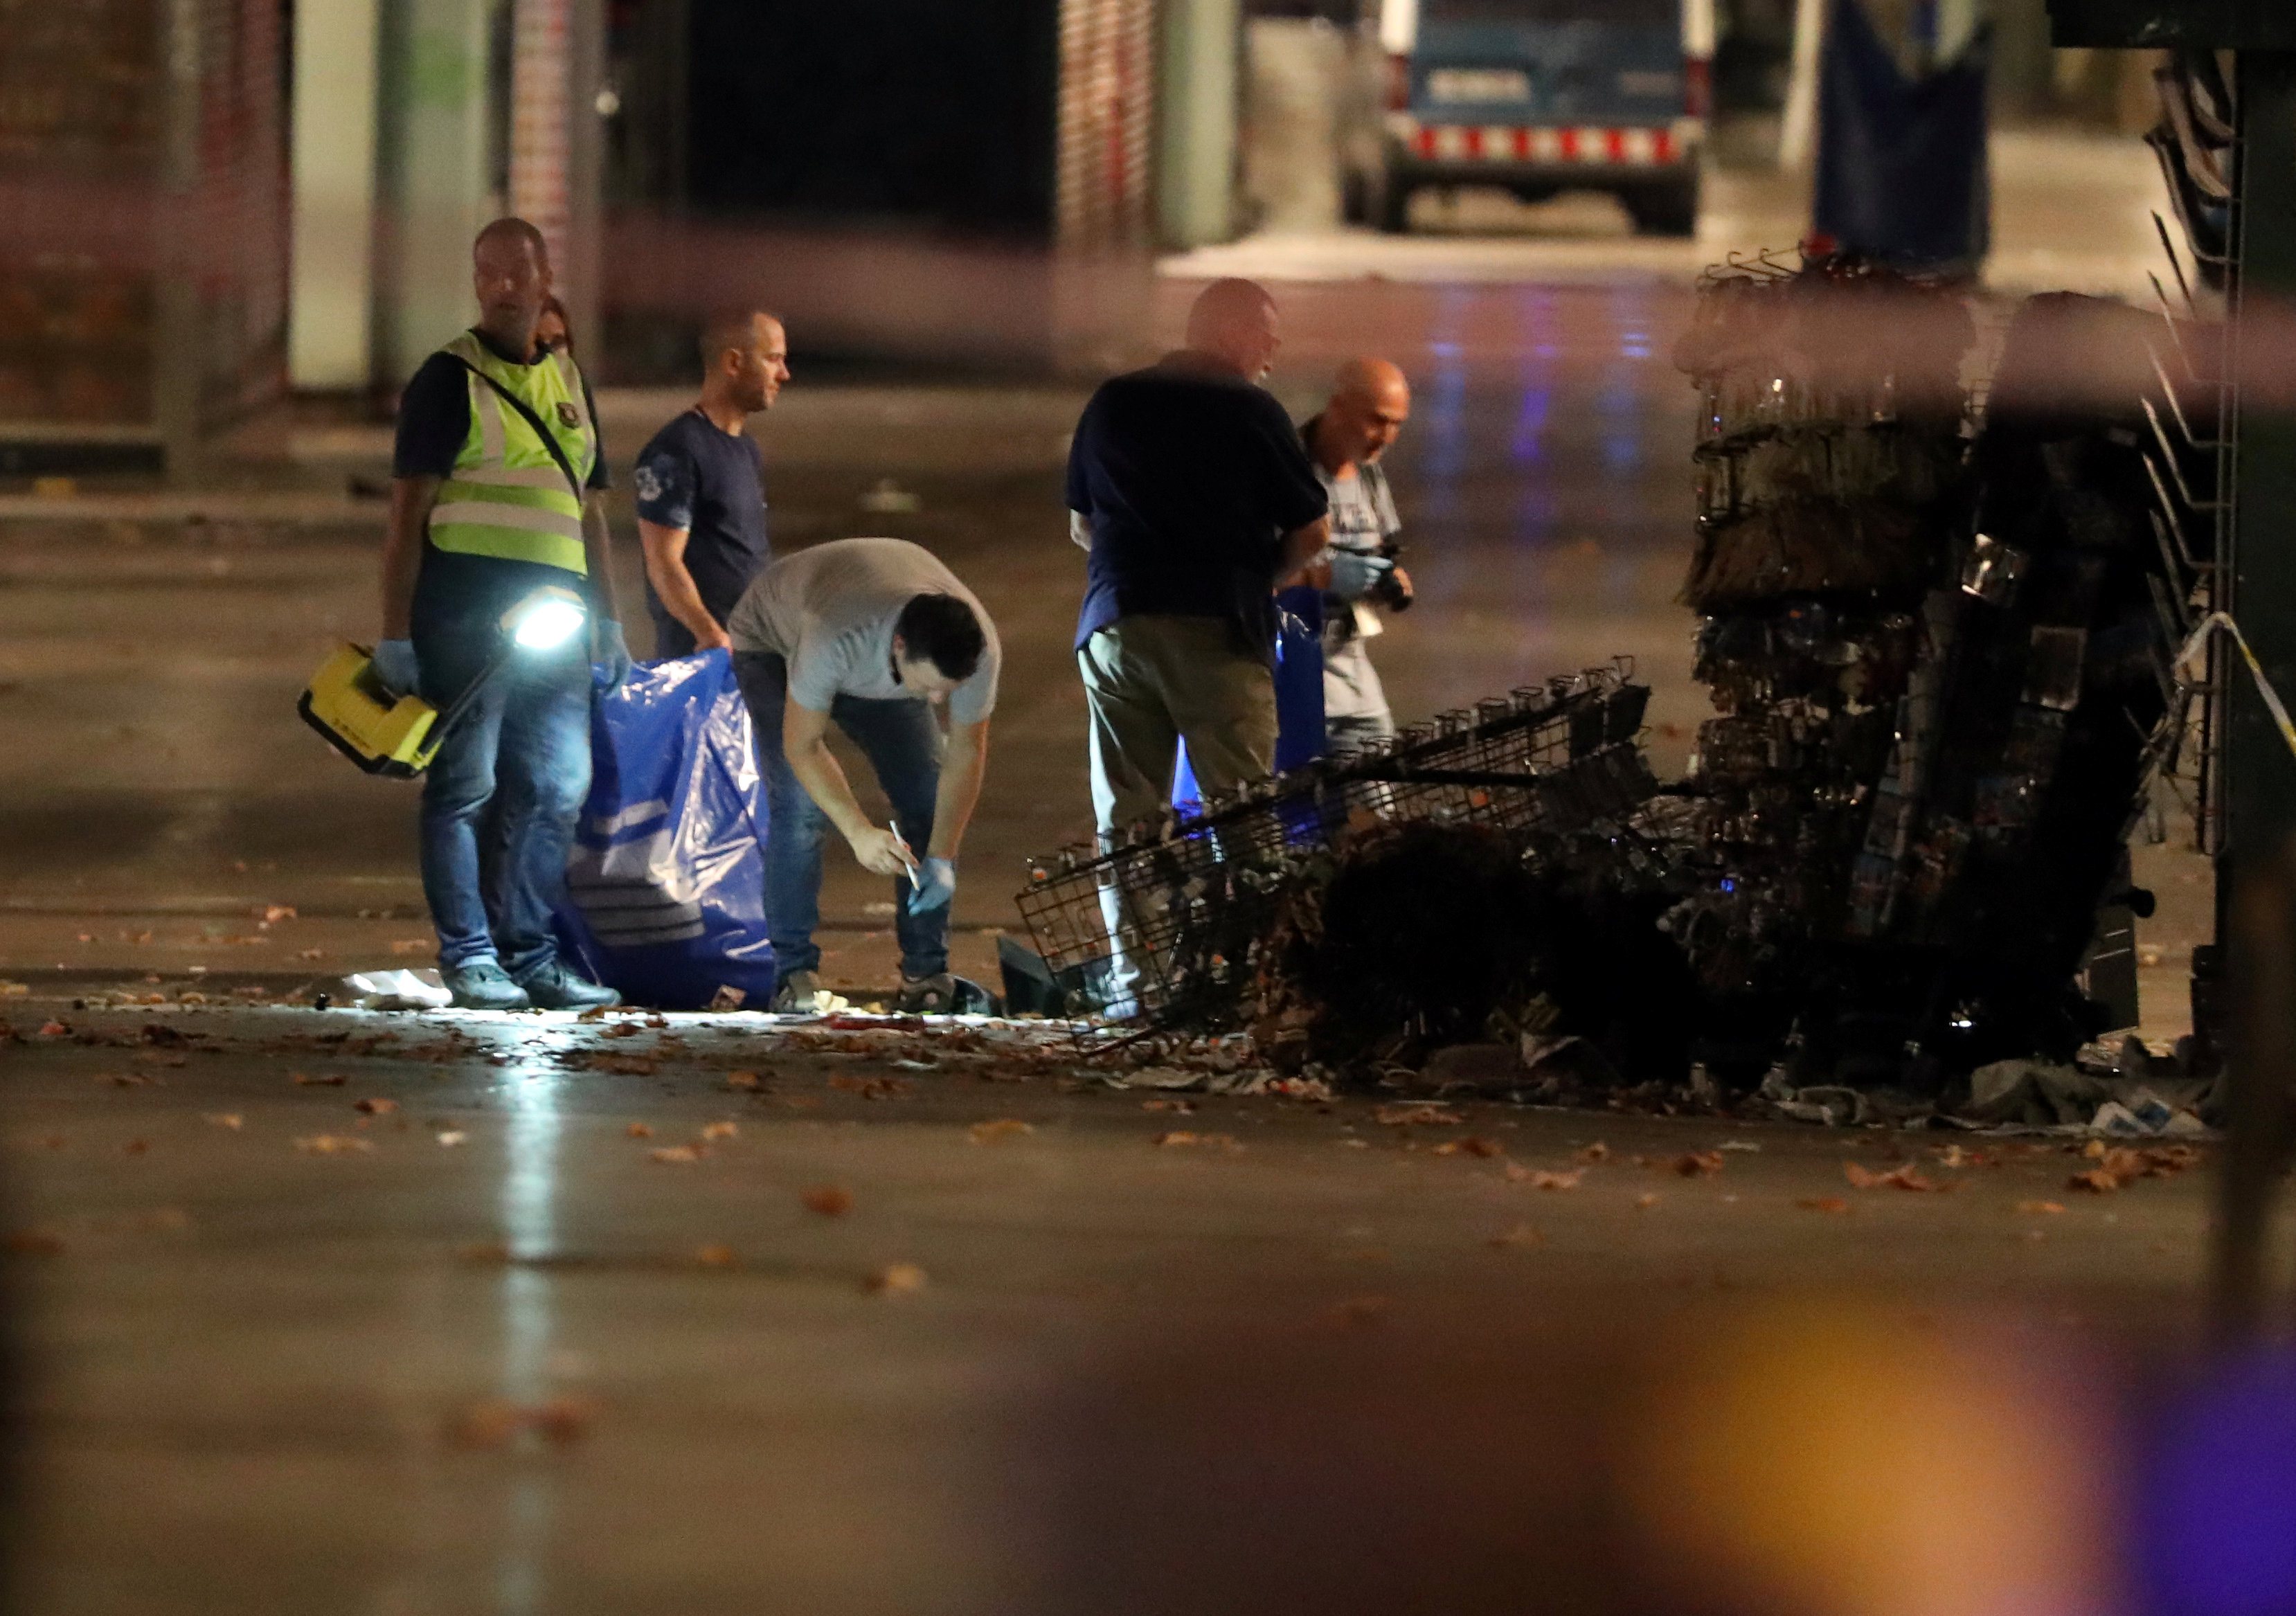 Forensic police officers search for clues near the area where a van crashed into pedestrians at Las Ramblas in Barcelona, Spain, August 18, 2017. (REUTERS/Sergio Perez)